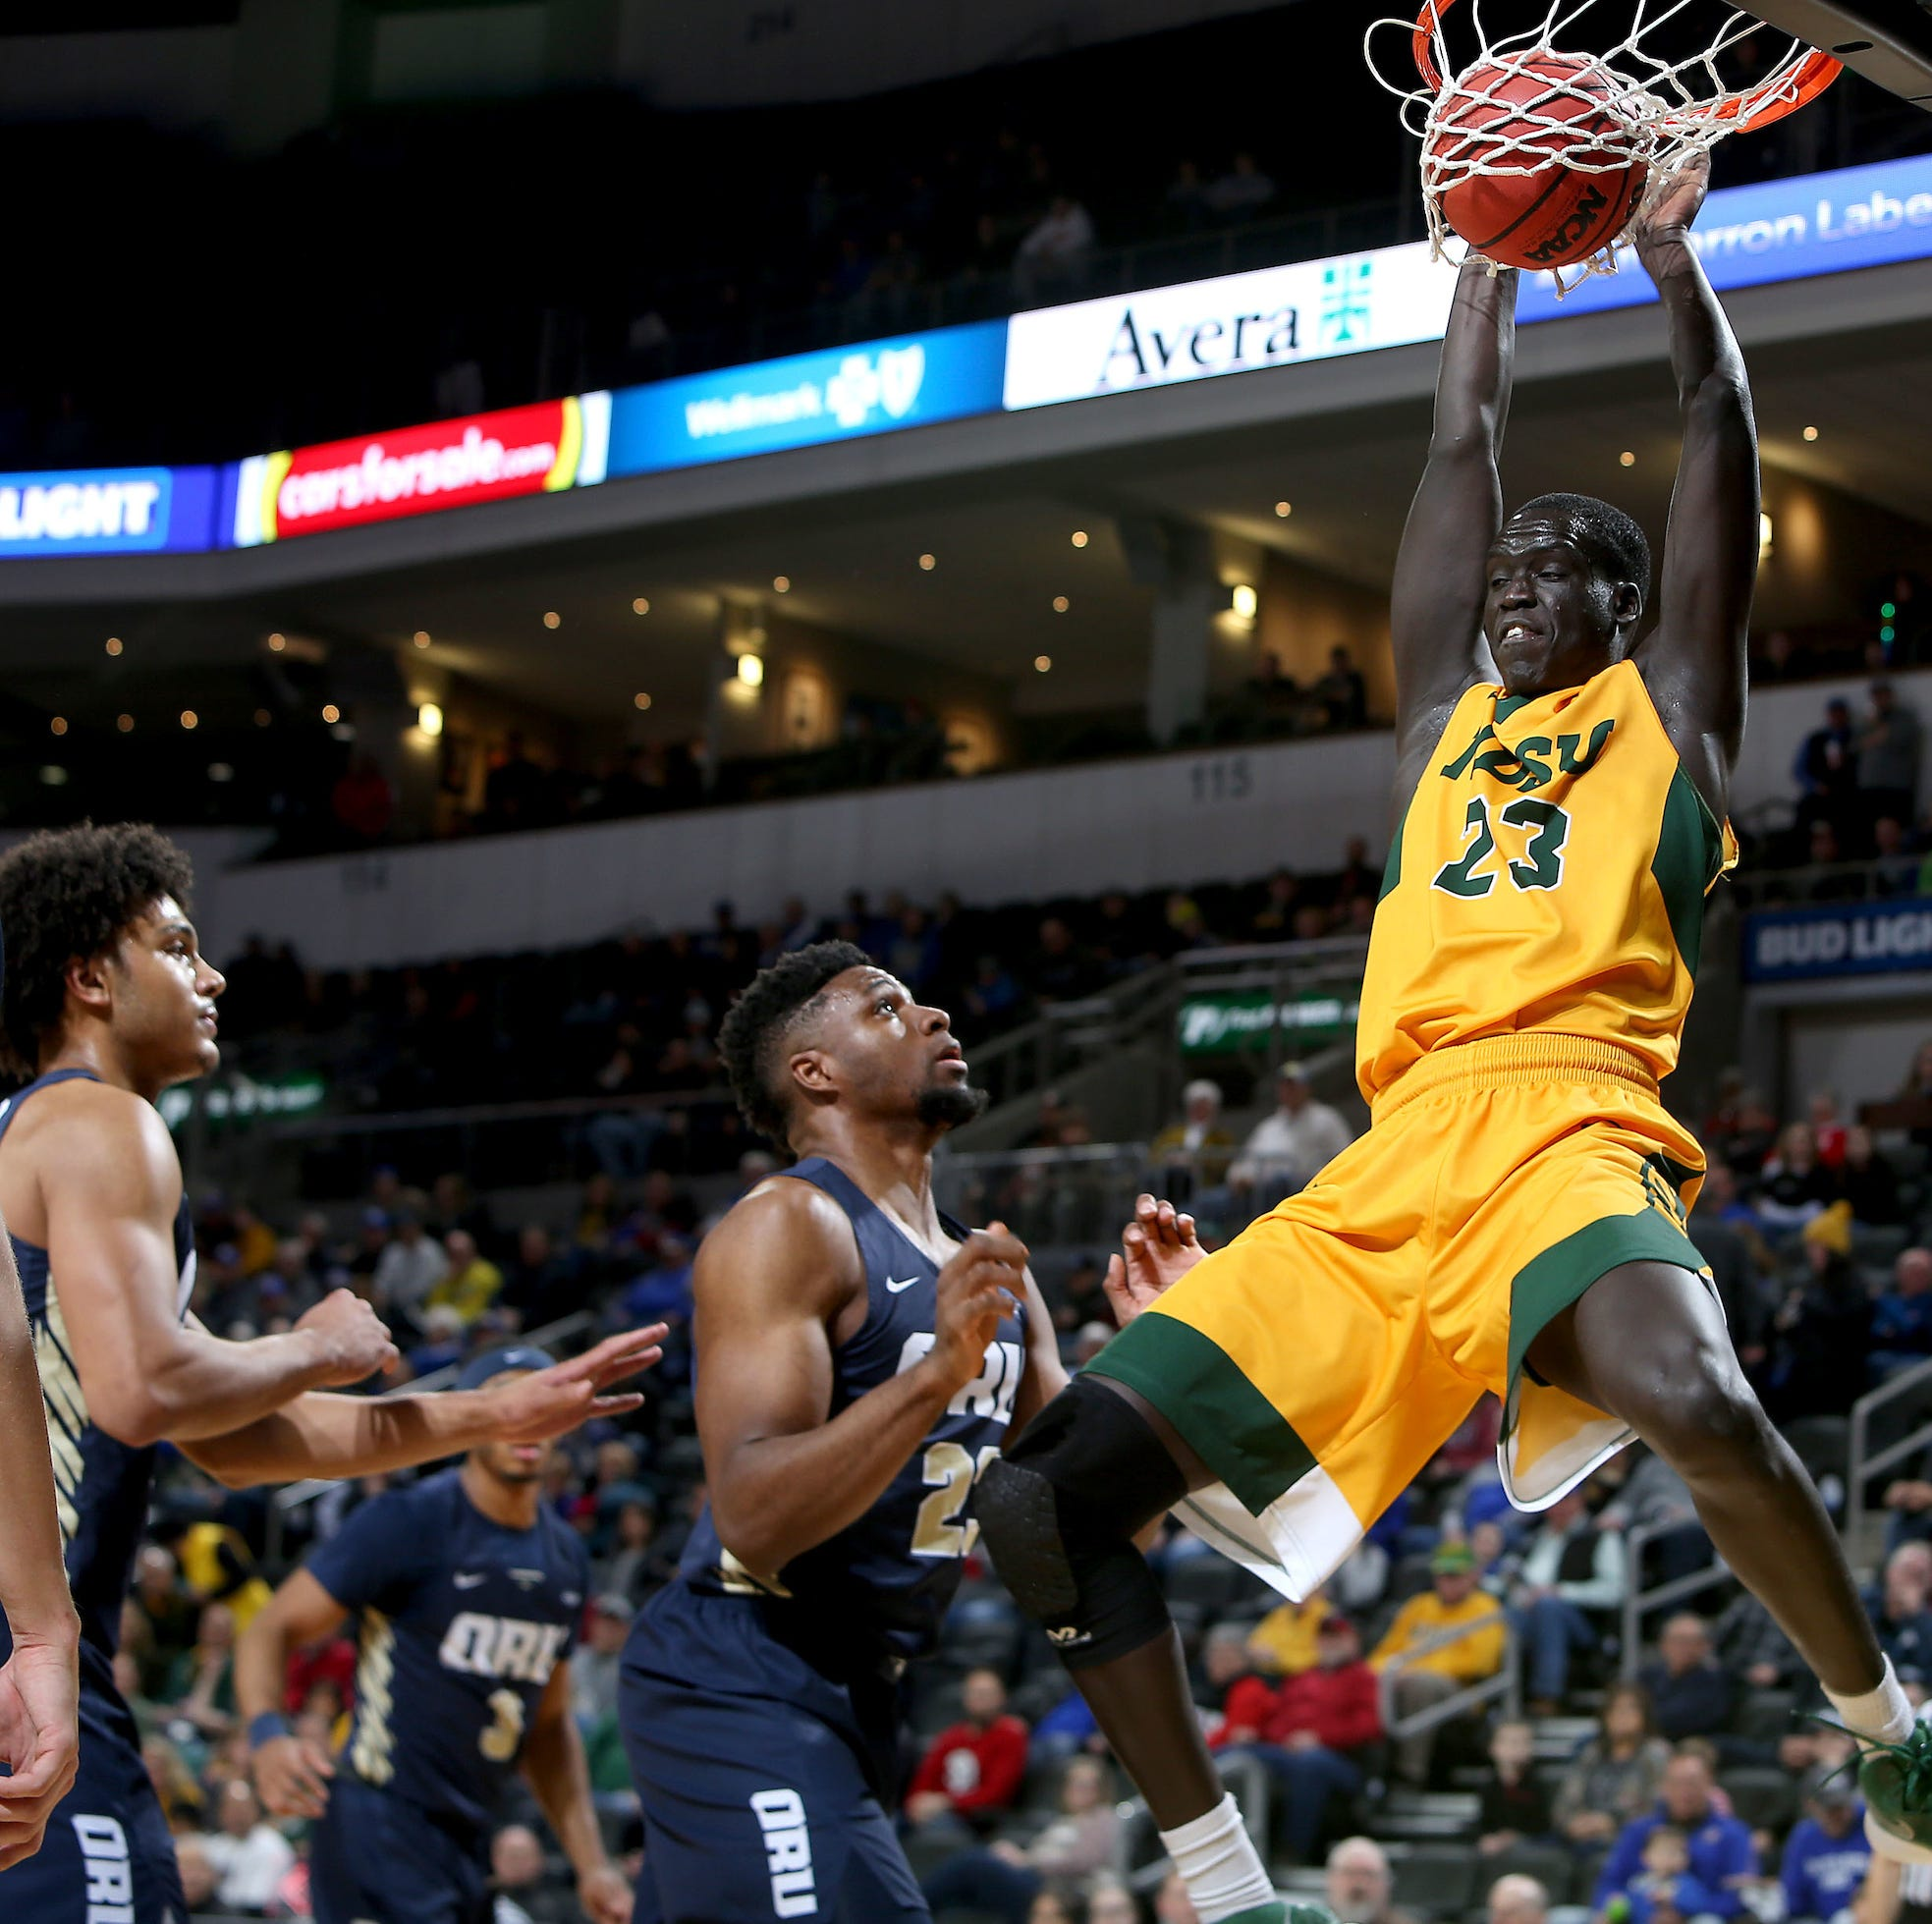 Washington High alum Deng Geu set to transfer from NDSU